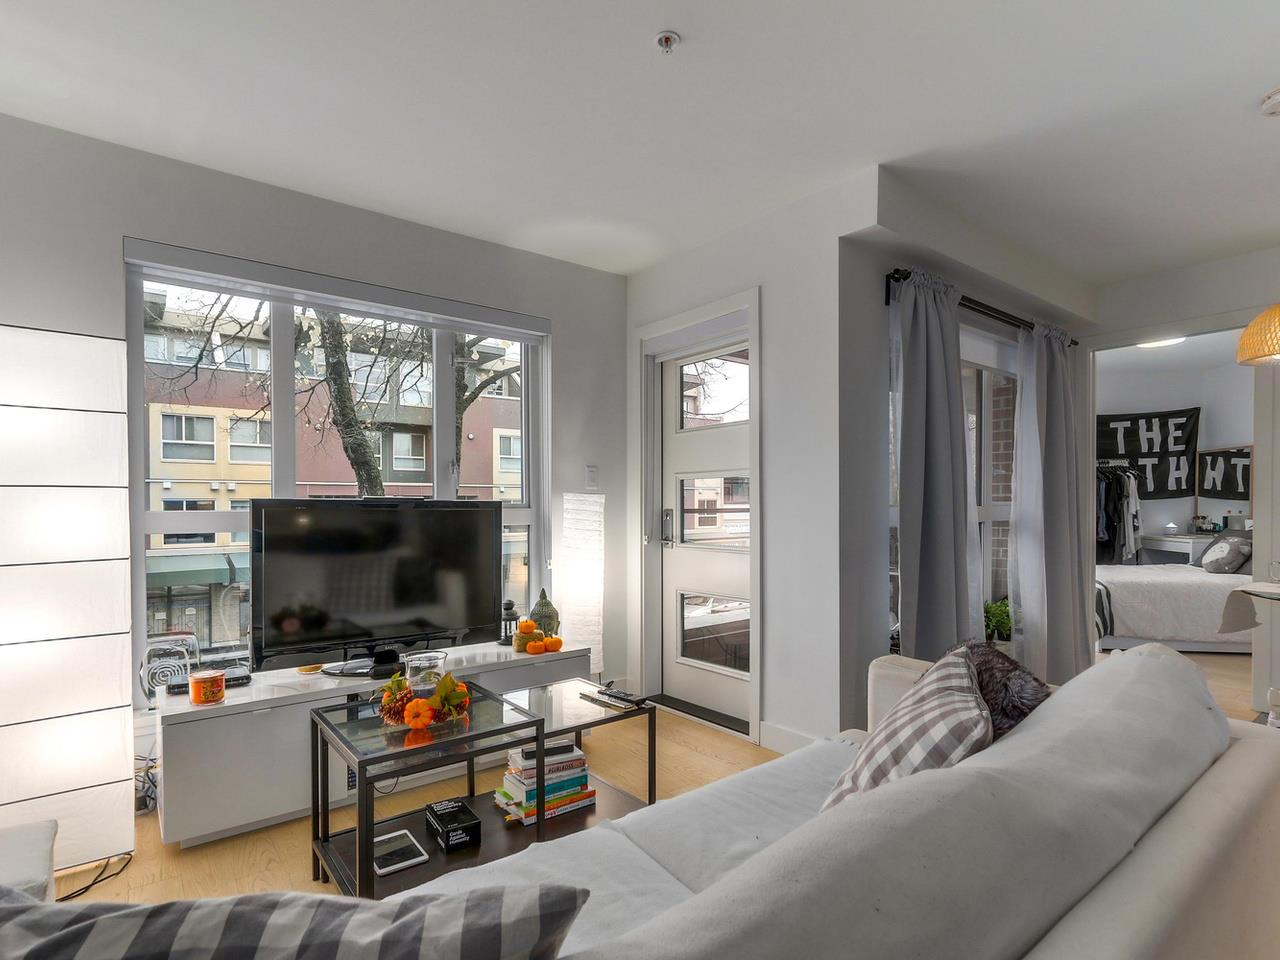 Photo 6: 218 3456 COMMERCIAL Street in Vancouver: Victoria VE Condo for sale (Vancouver East)  : MLS® # R2118964